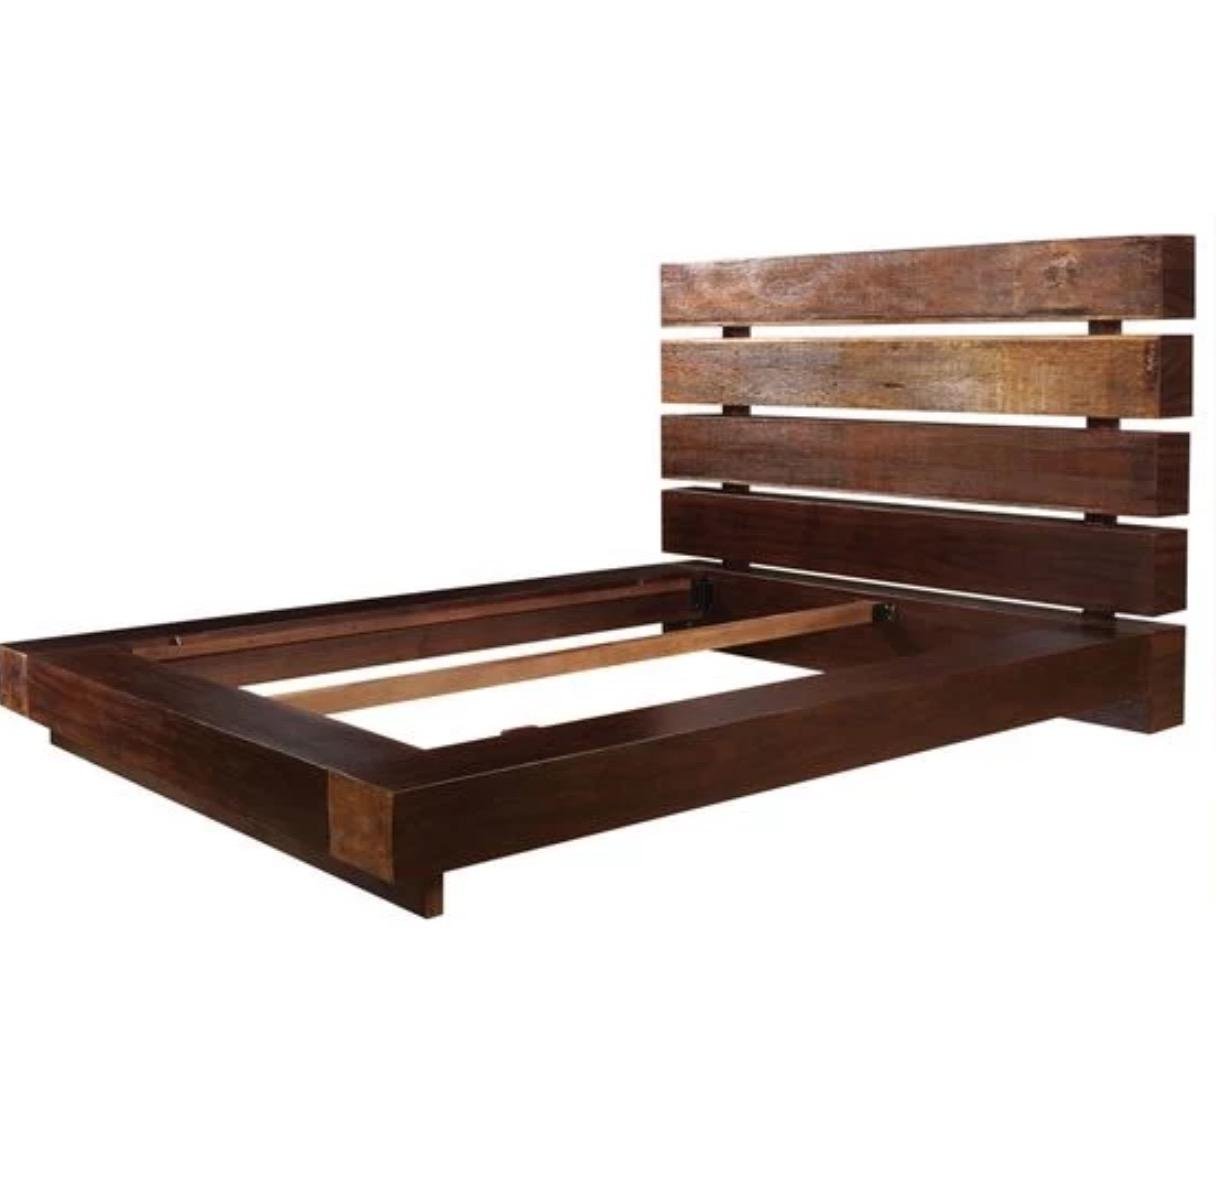 Reclaimed Queen Platform Bed By Four Hands   Image 1 Of 3